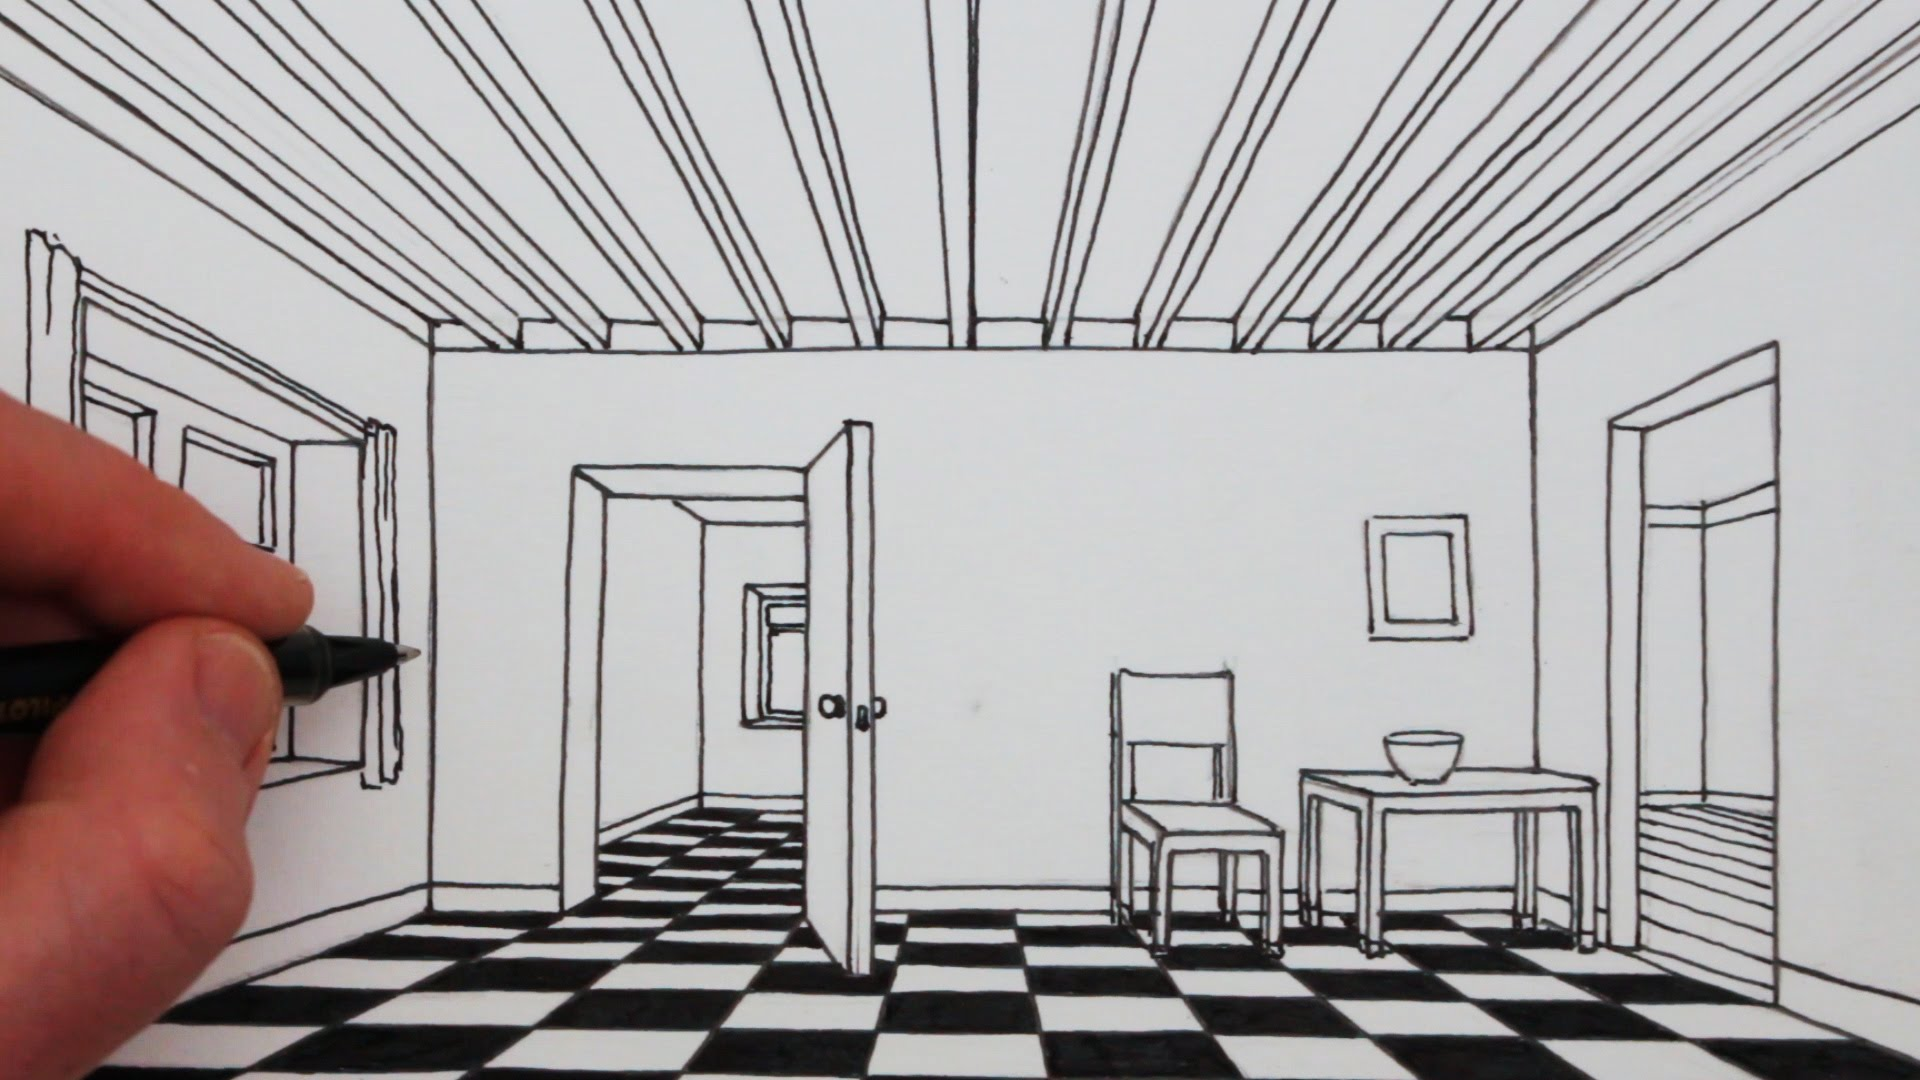 Drawn room pencil drawing Perspective: to a Room a